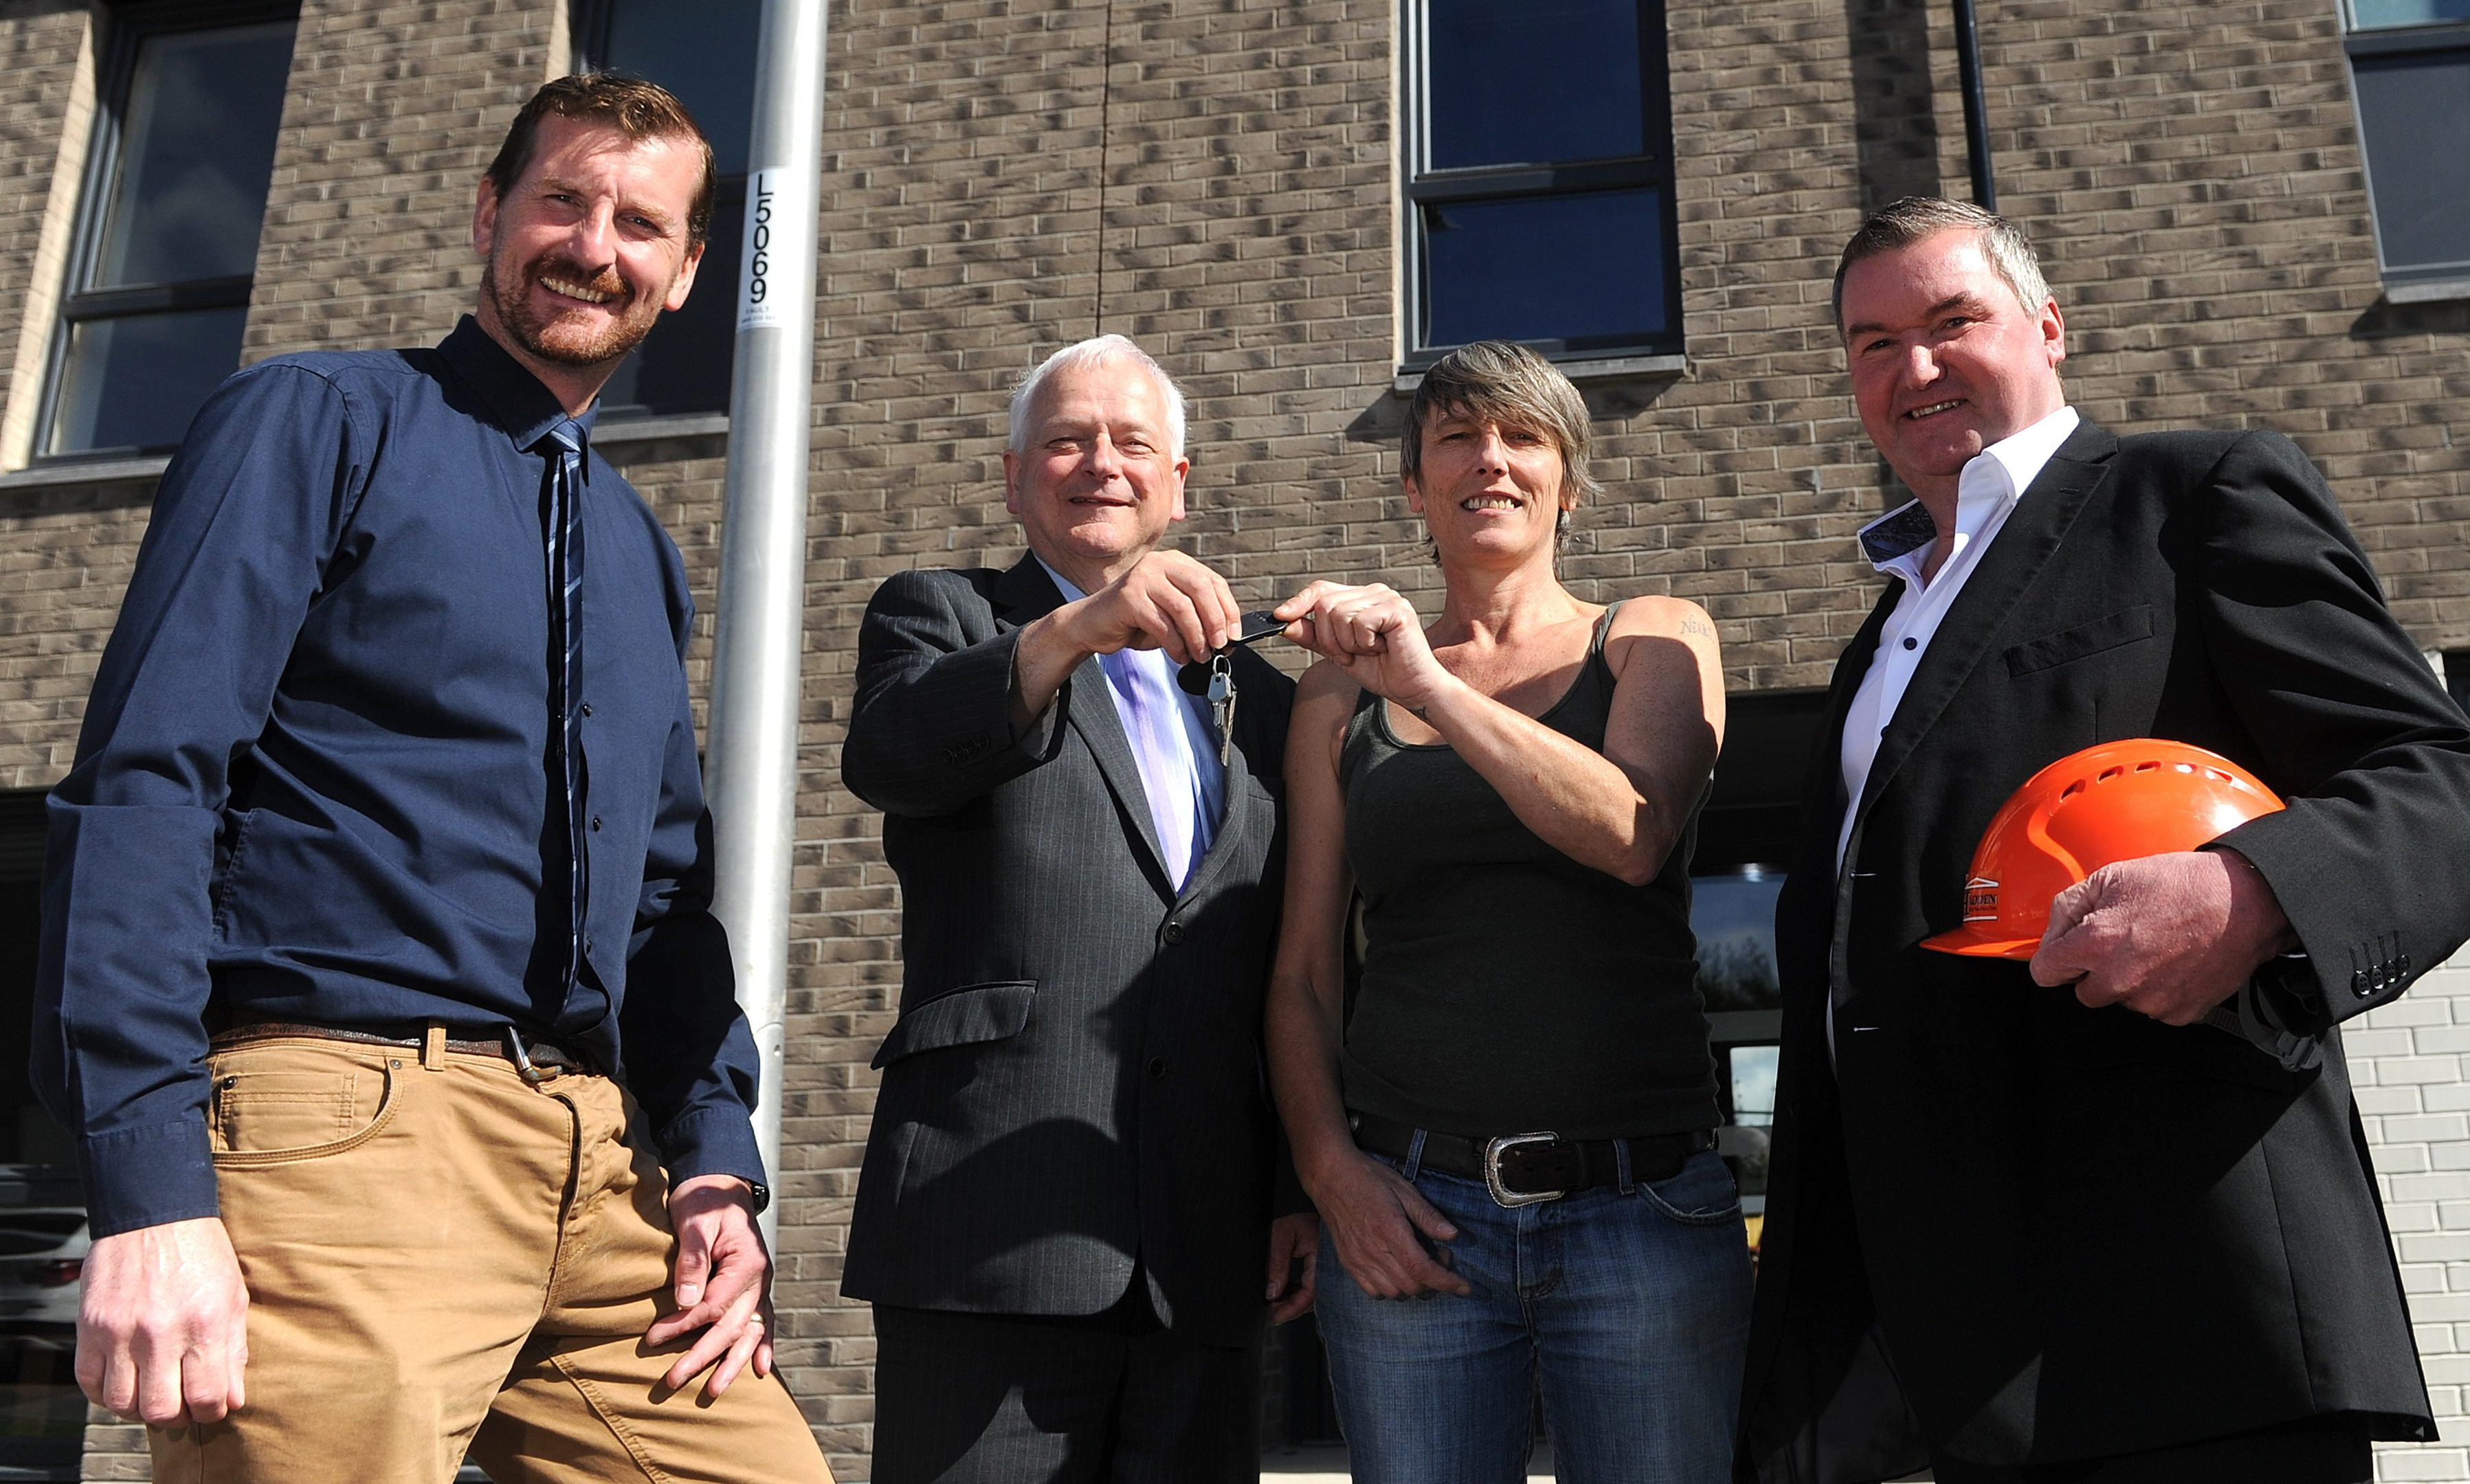 Councillor Dave Doogan (Perth and Kinross Council Convenor of the Housing Committee), Councillor Ian Miller (Perth and Kinross Council Leader), Nicola Davidson (new tenant) and Scott Hadden (Chairman of Hadden Construction), at the launch of new council homes in Springbank Road, Alyth.